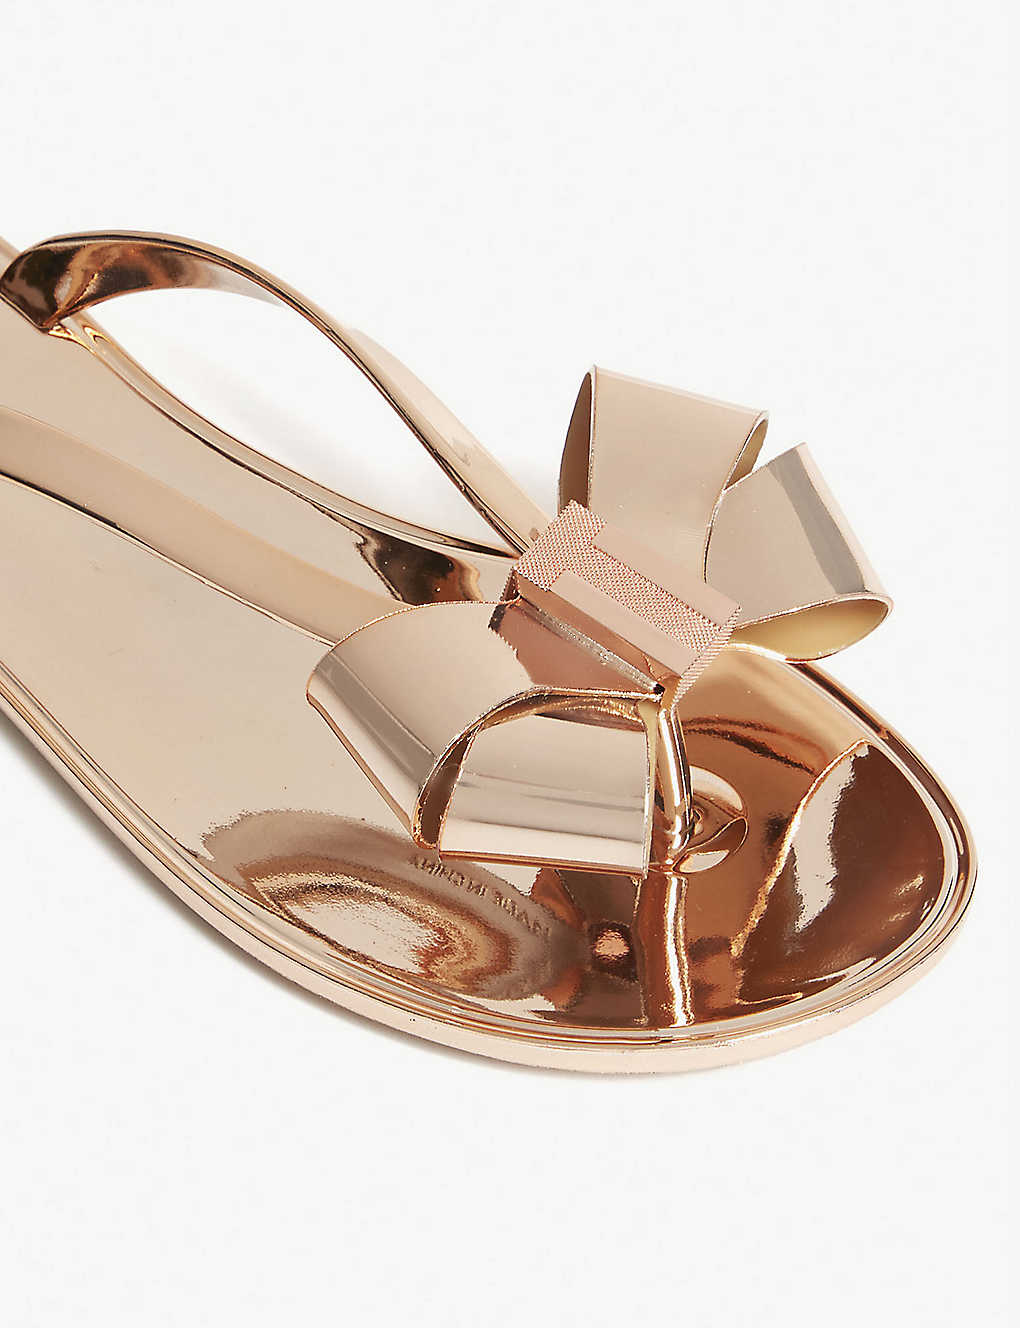 2a2ff4f34c6c TED BAKER - Glamari bow-detail metallic jelly sandals